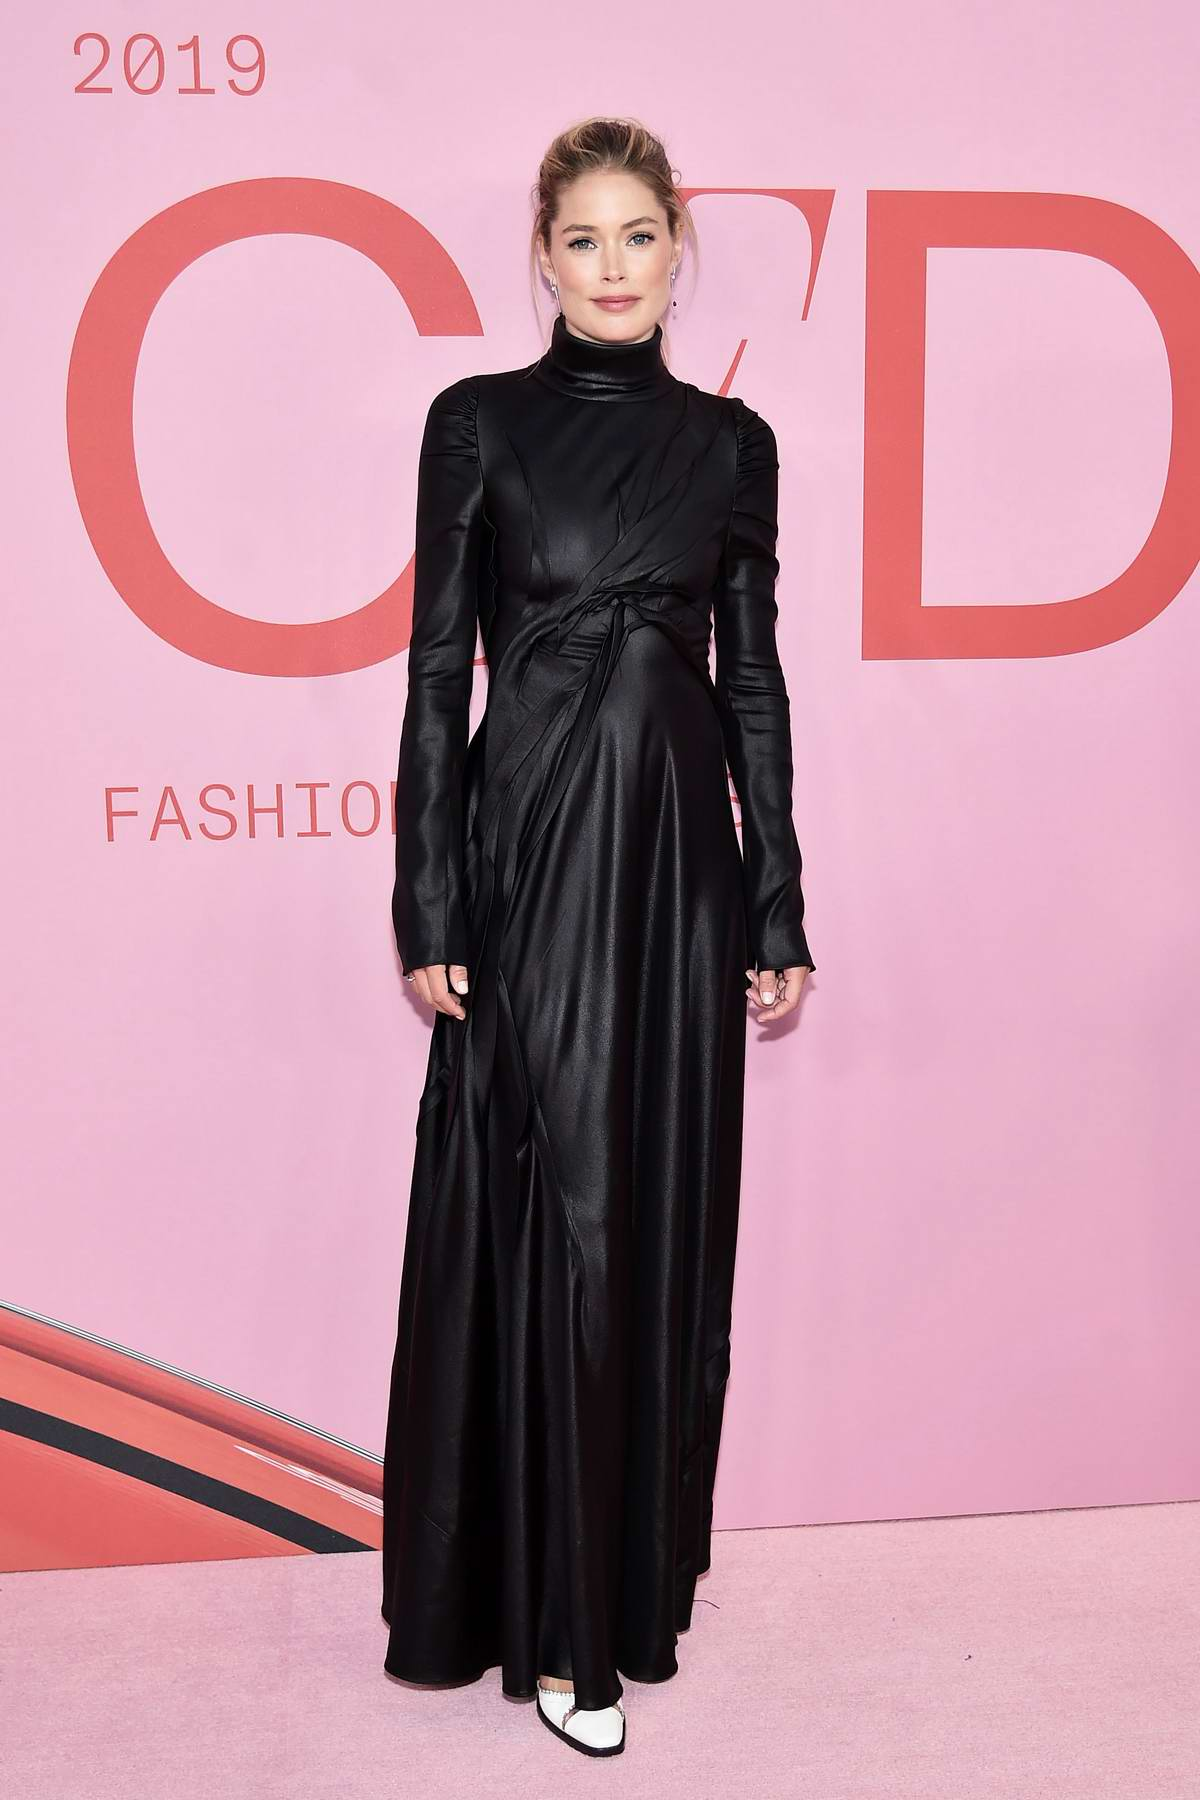 Doutzen Kroes attends the 2019 CFDA Fashion Awards at Brooklyn Museum in New York City